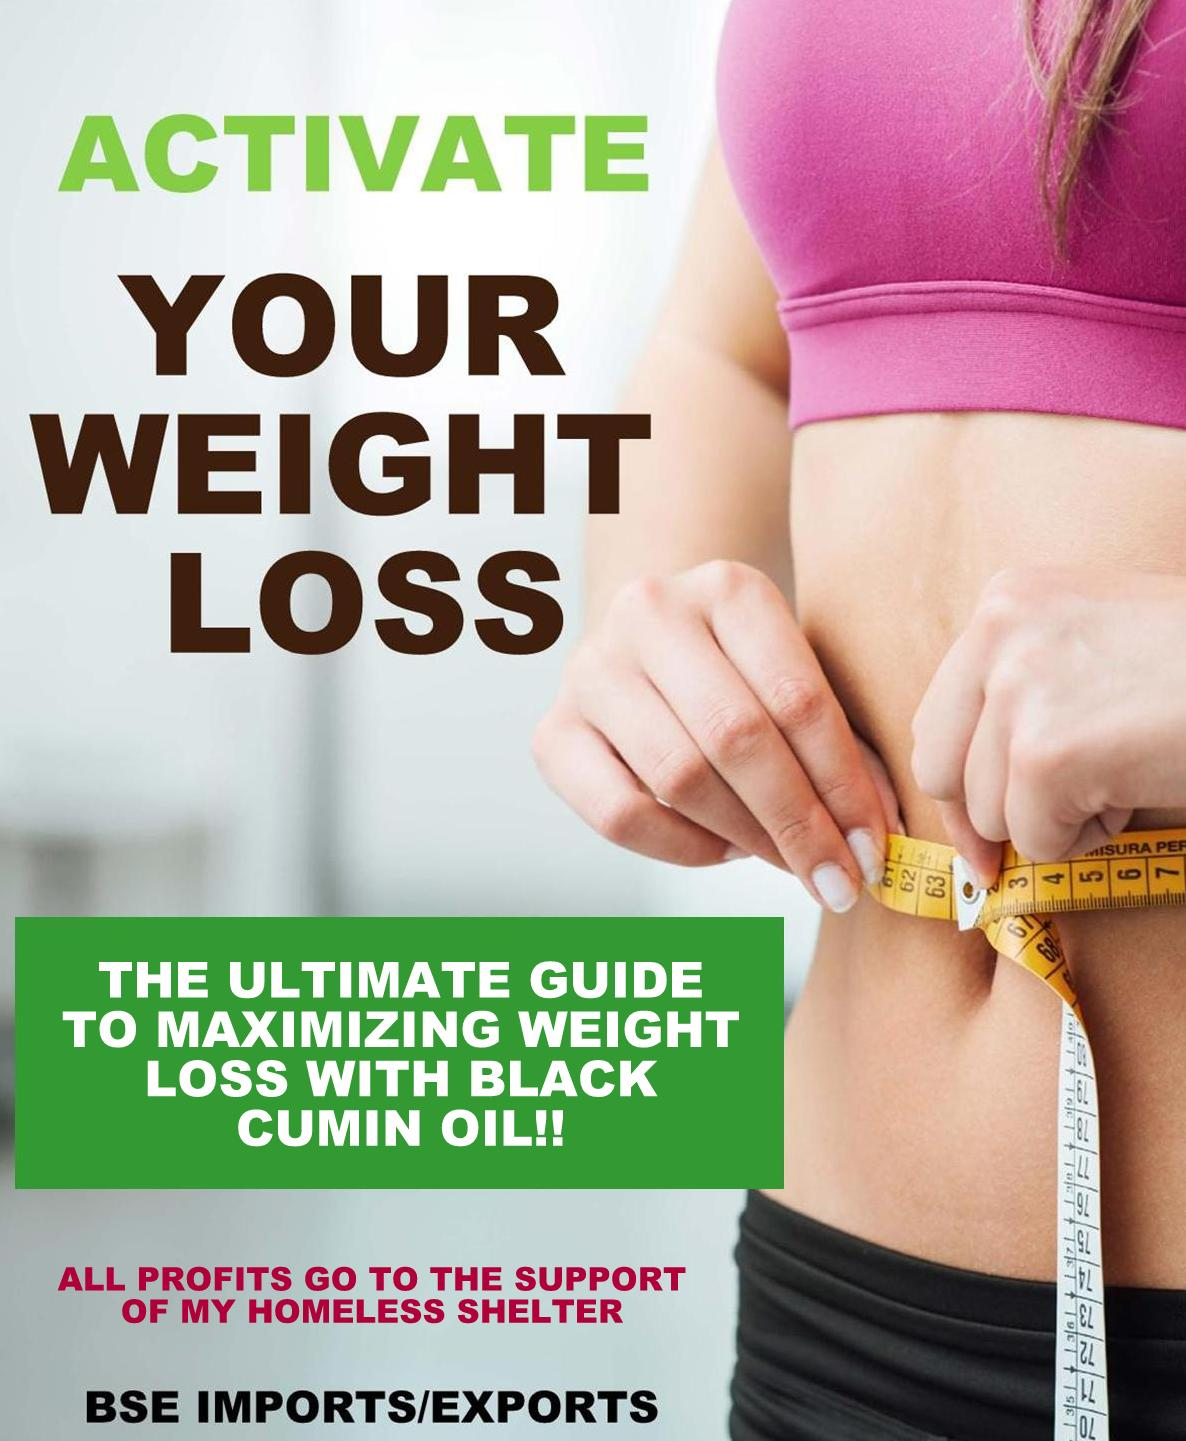 ACTIVATE YOUR WEIGHT LOSS FAST EBOOK